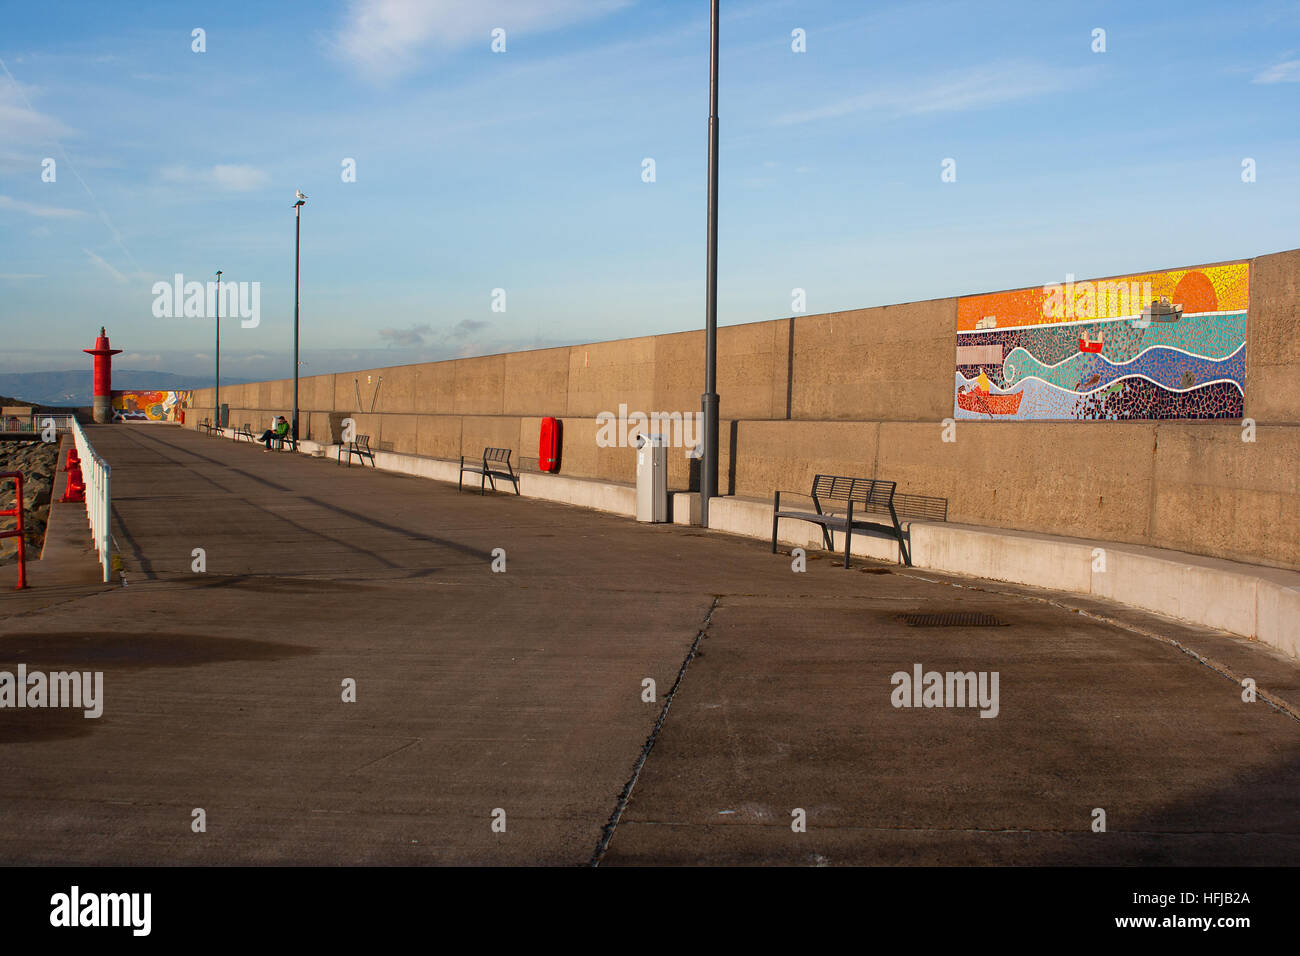 A modern harbor pier built of concrete with a colorful mosaic mural on display and also with navigation lights for - Stock Image